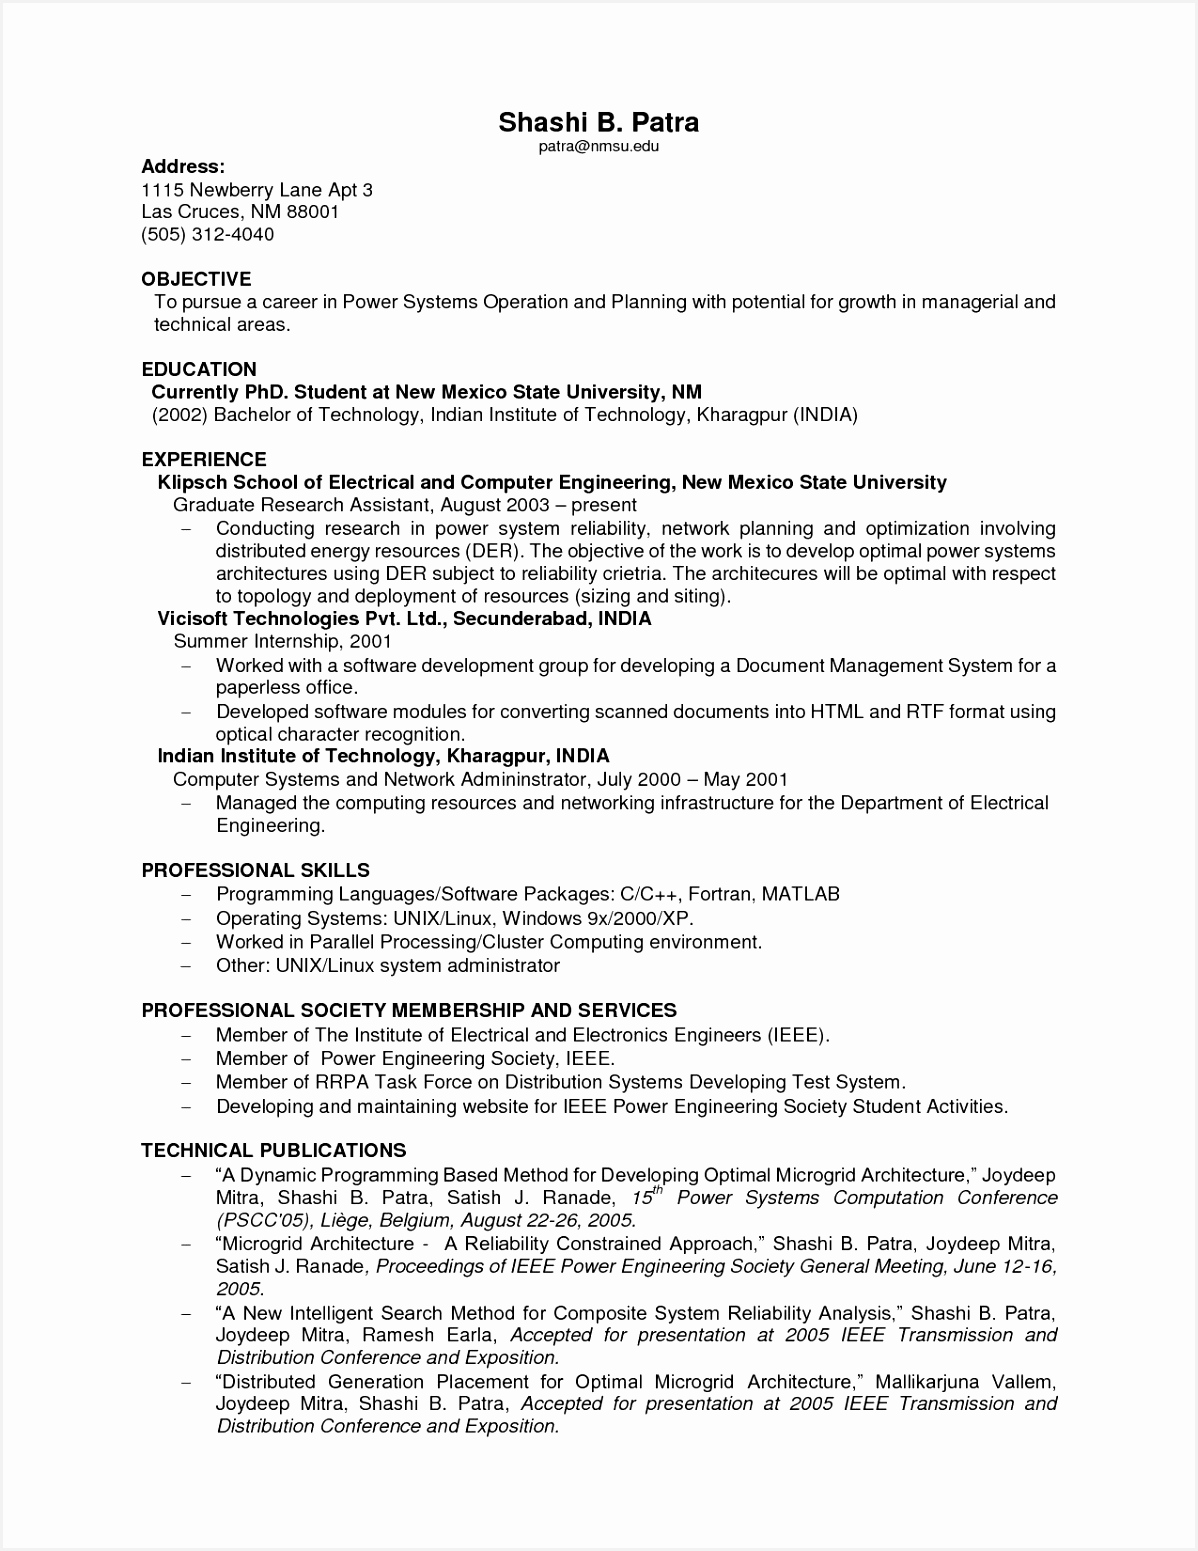 Examples College Resumes Unique Resume for College Students with No Experience Ideas Unique Examples 155111980oSsX